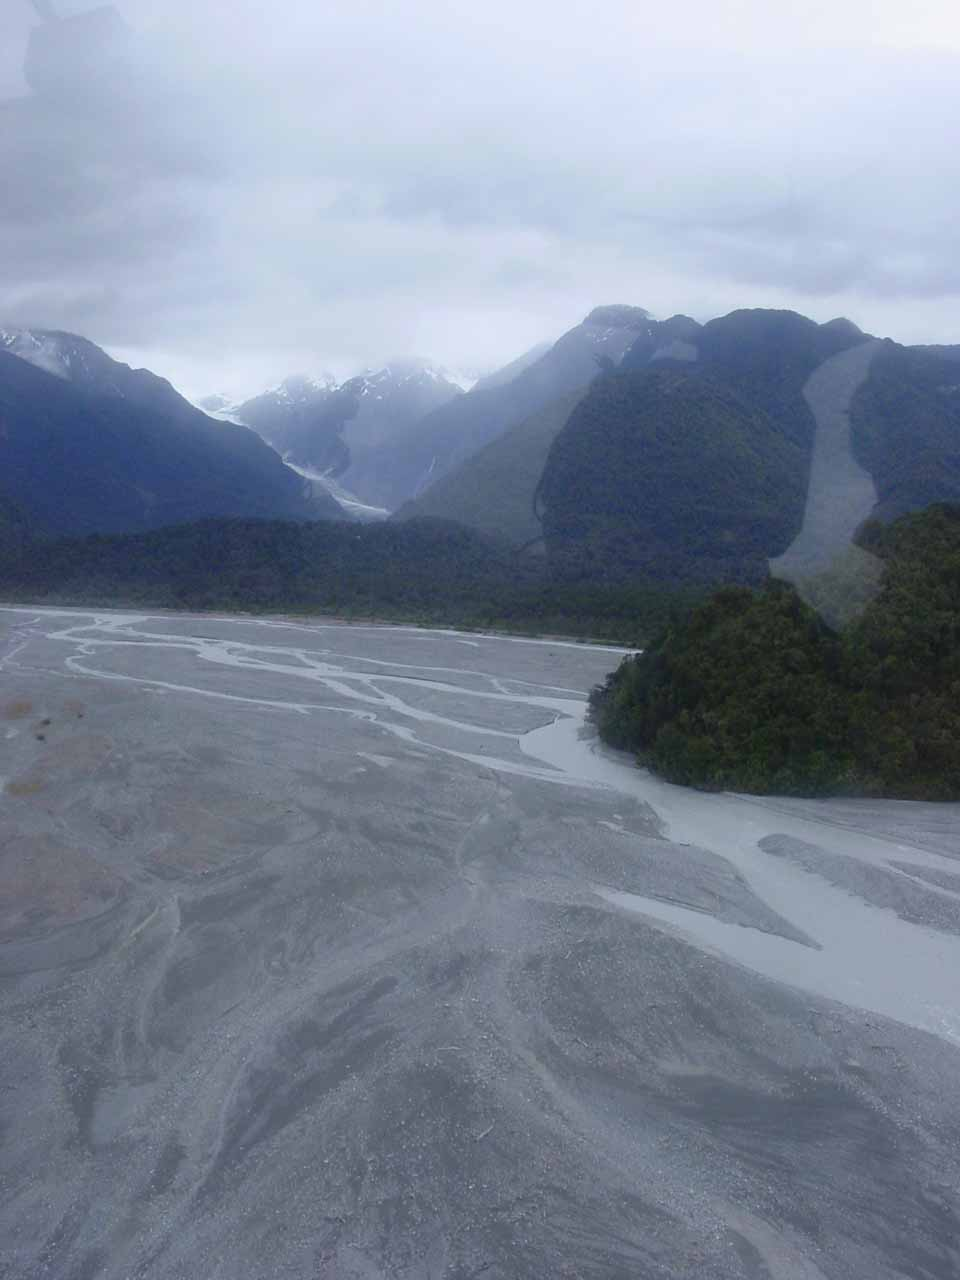 Looking over the alluvial fan back towards the Franz Josef Glacier